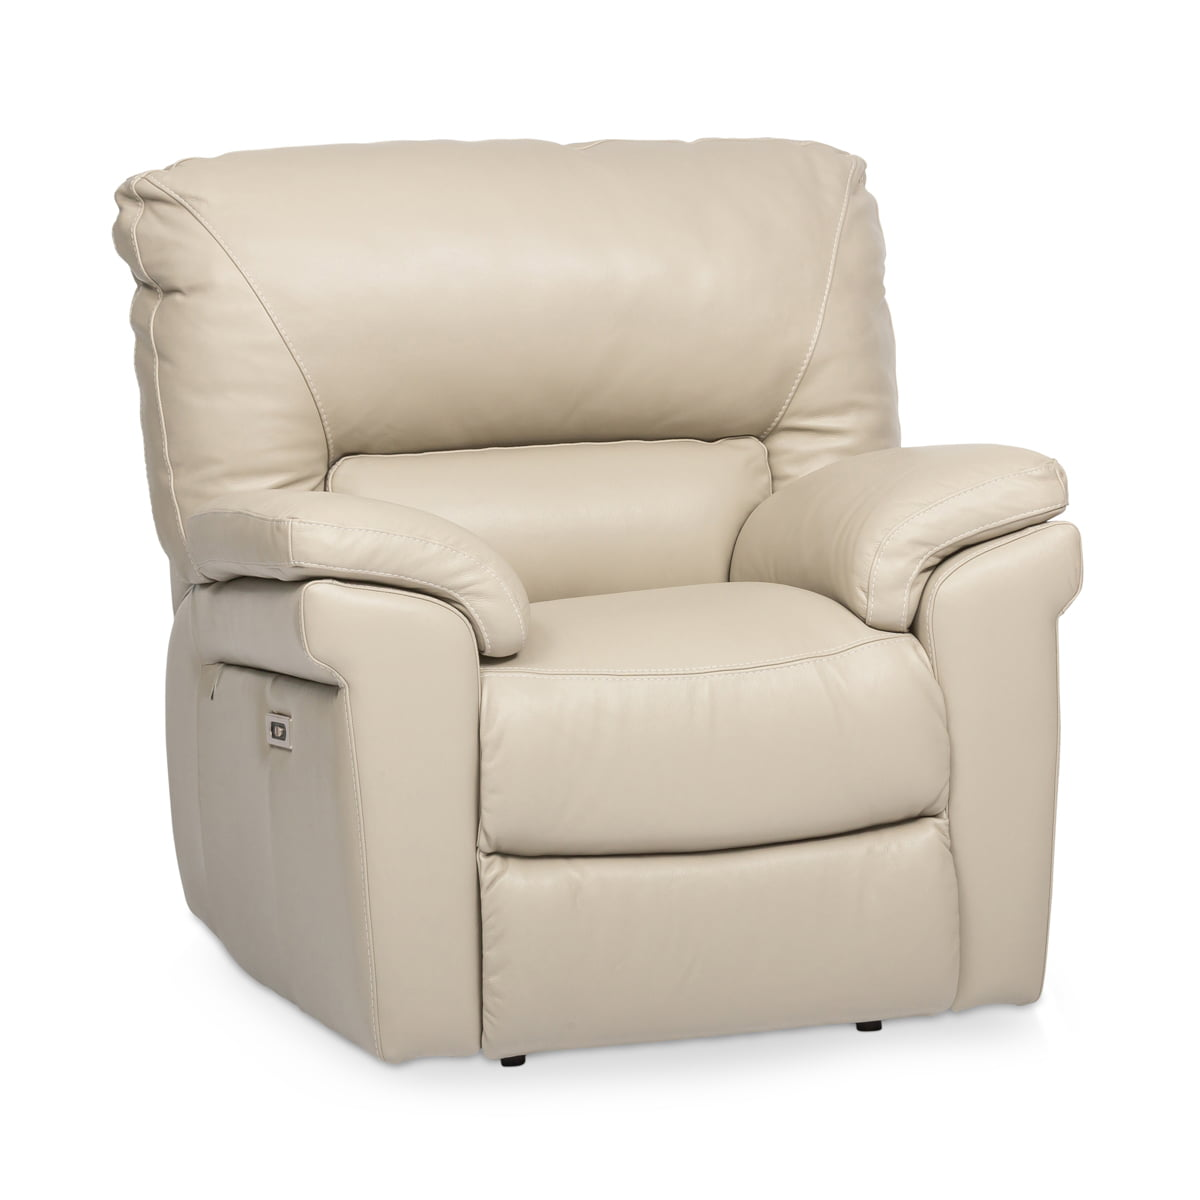 Corrado Leather Powered Recliner